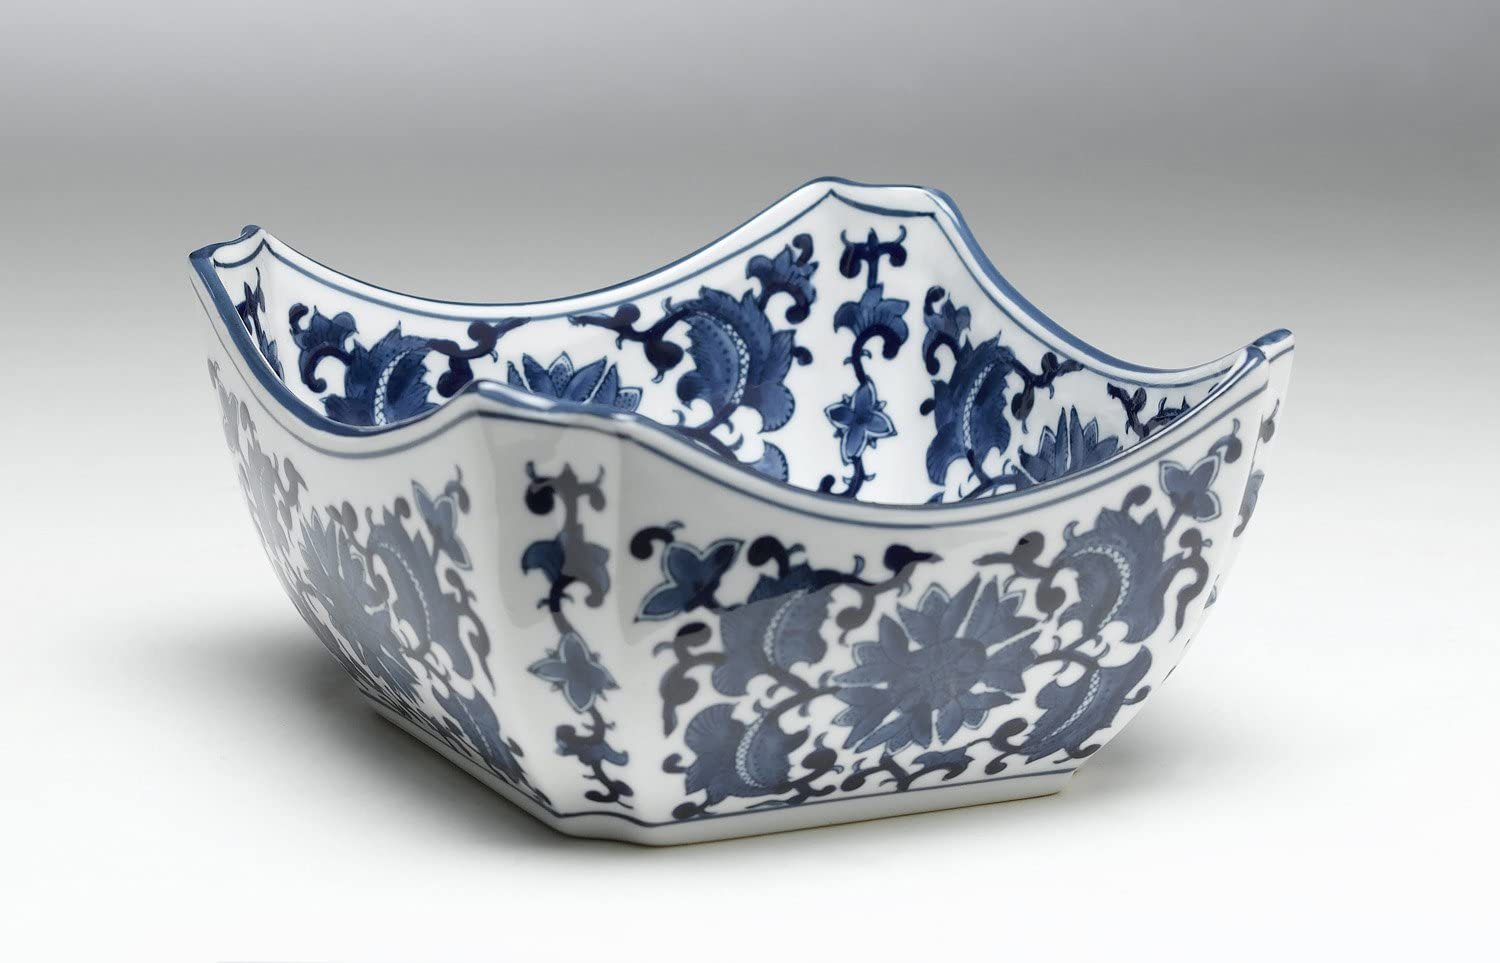 Zeckos AA Importing 59710 Square White New product!! Bowl Blue Japan Maker New and